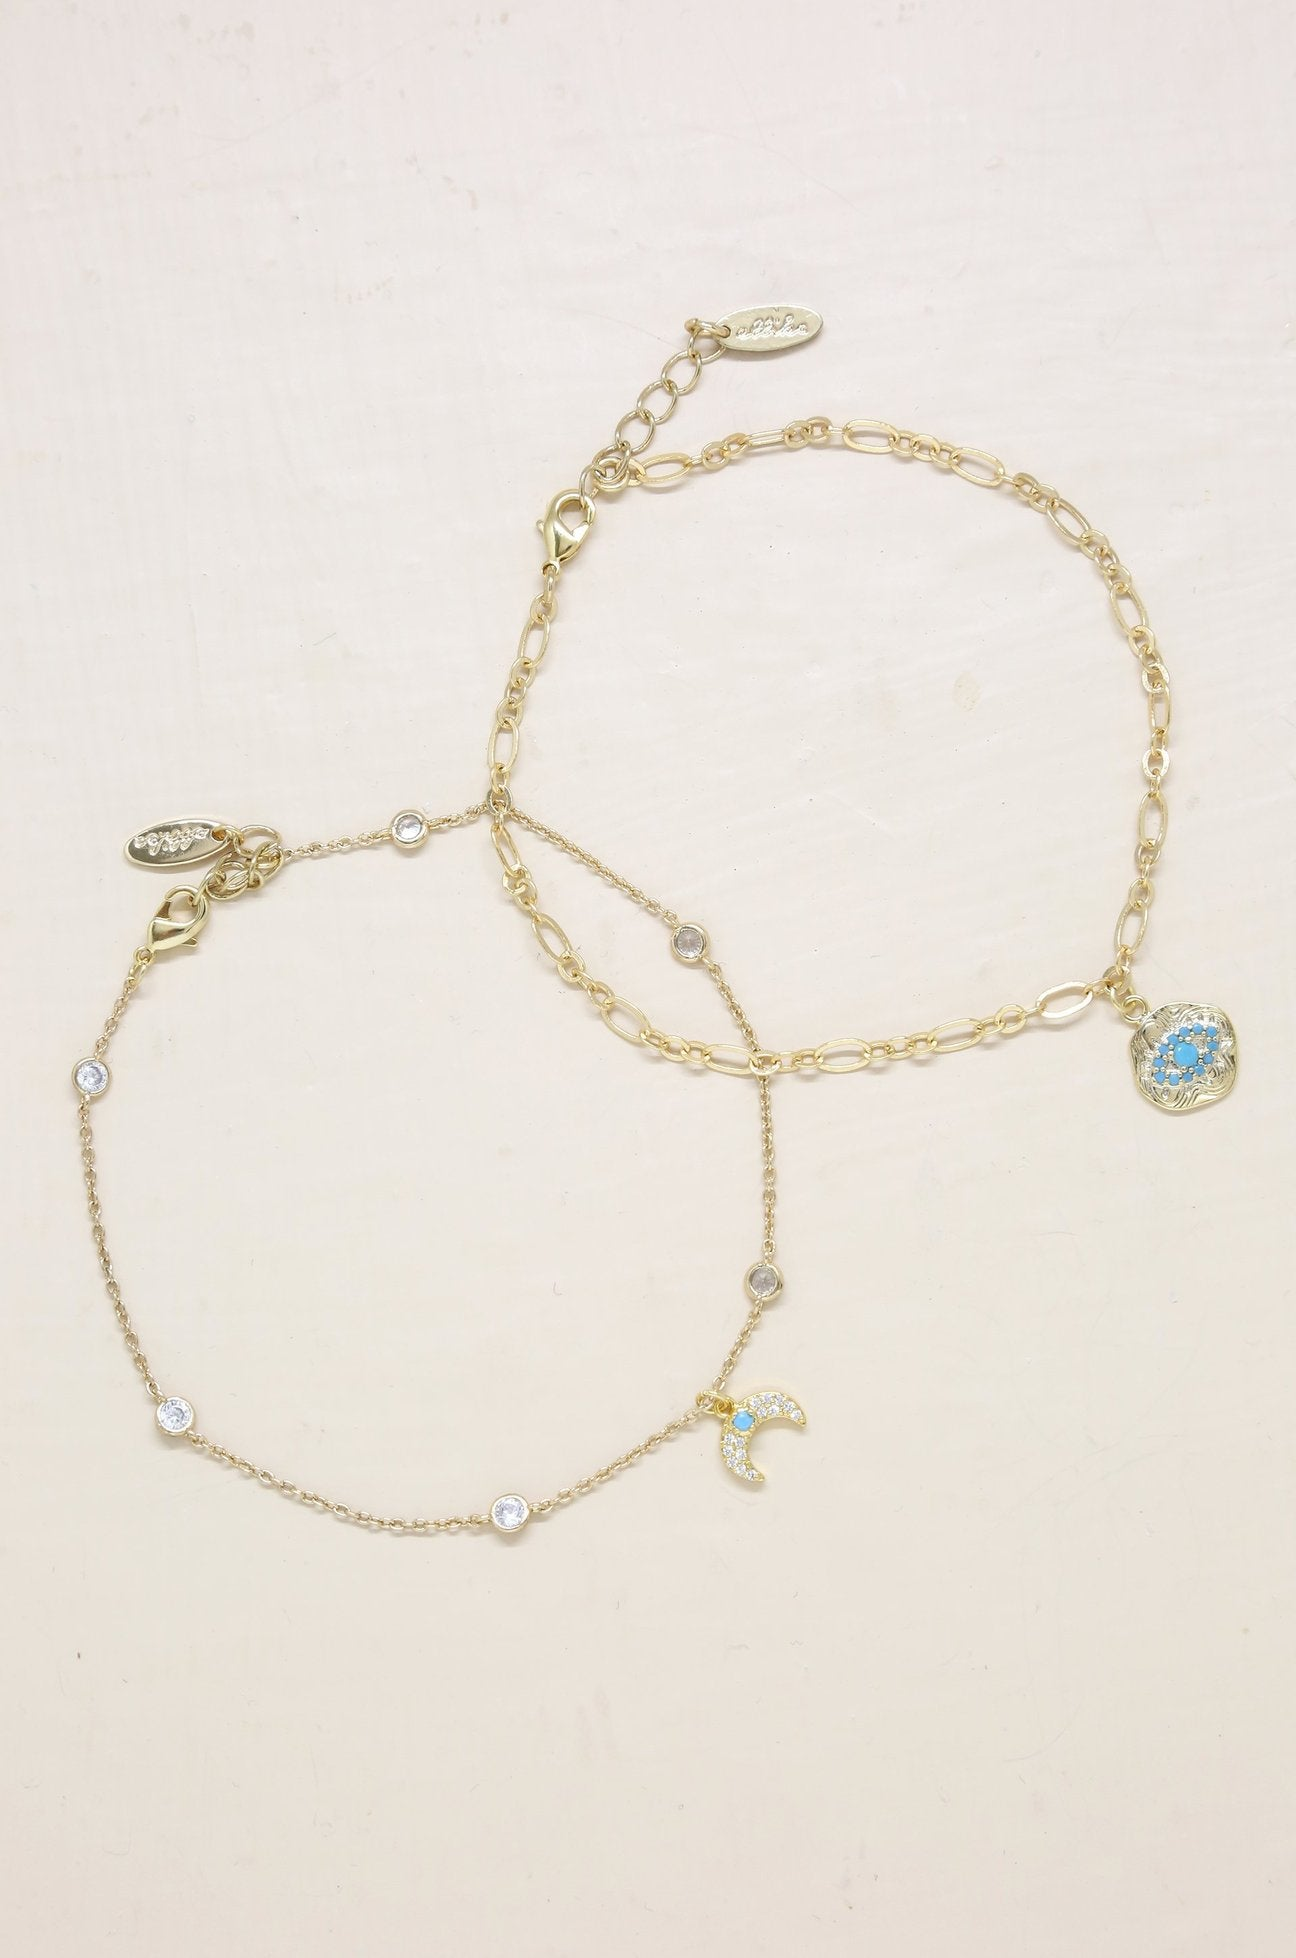 'Into the Blue' Third Eye and Crystal Horn Anklet